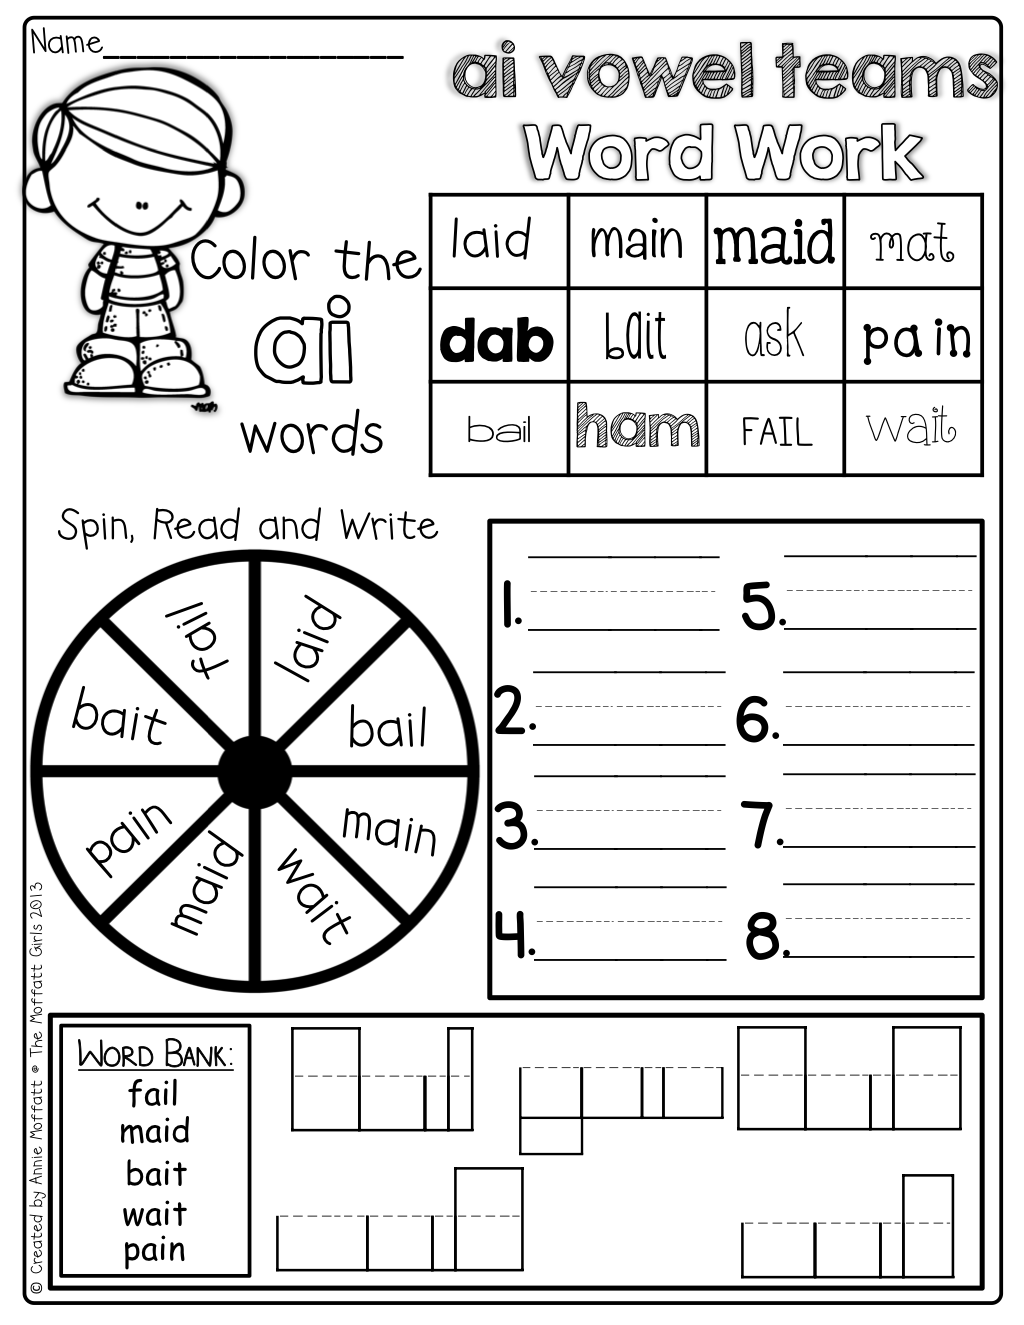 Vowel Team Word Work Digraphs Blends And More So Many